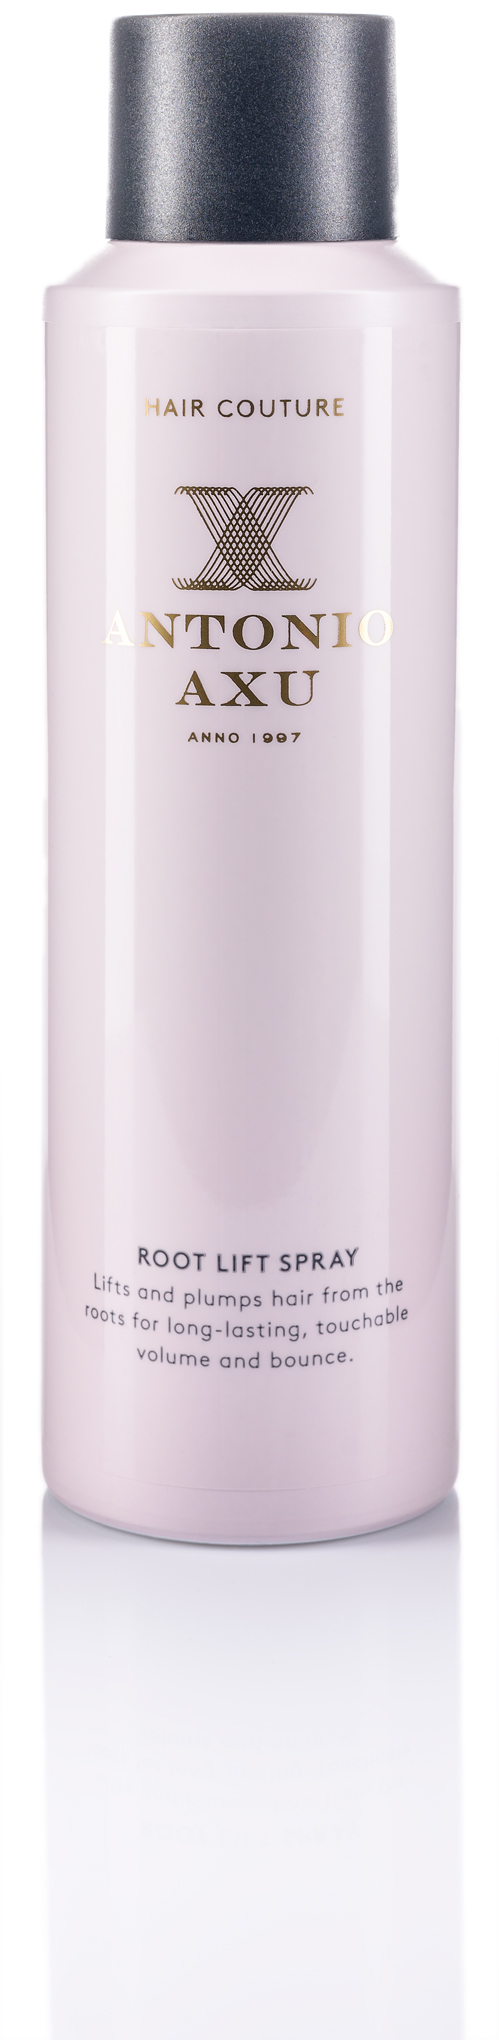 Antonio Axu - Root Lift Spray 200 ml